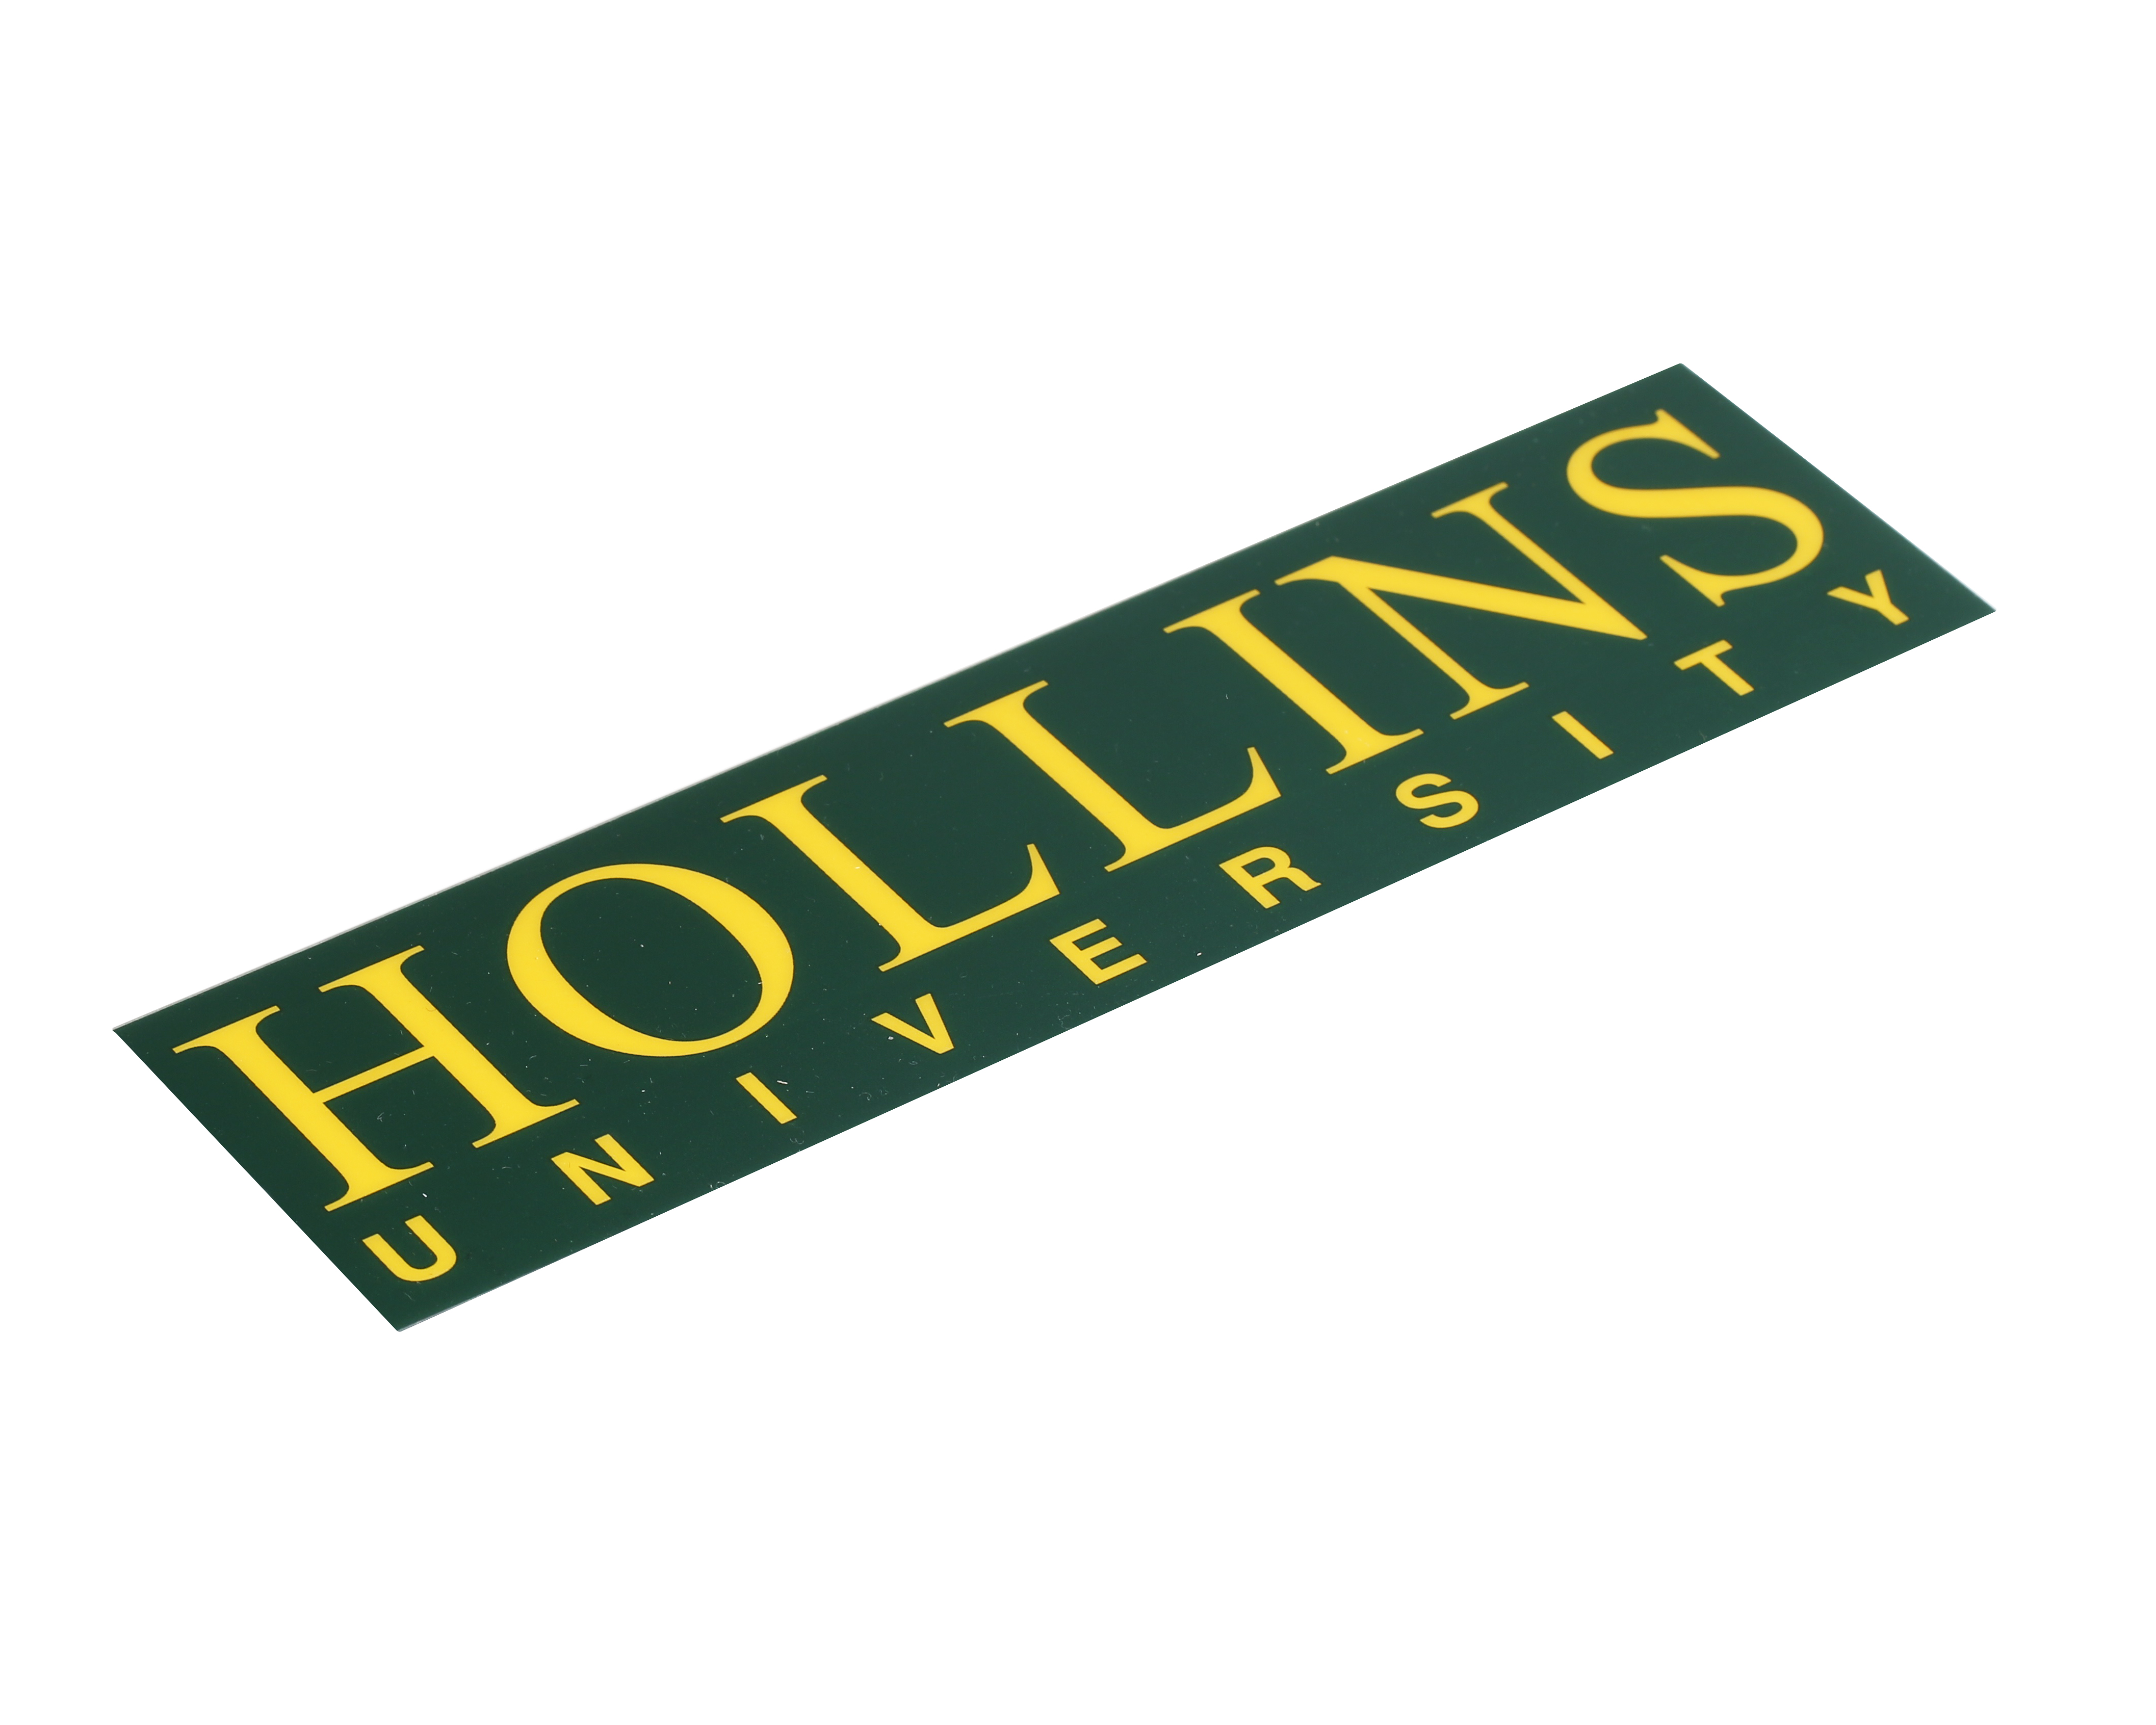 Hollins University decal